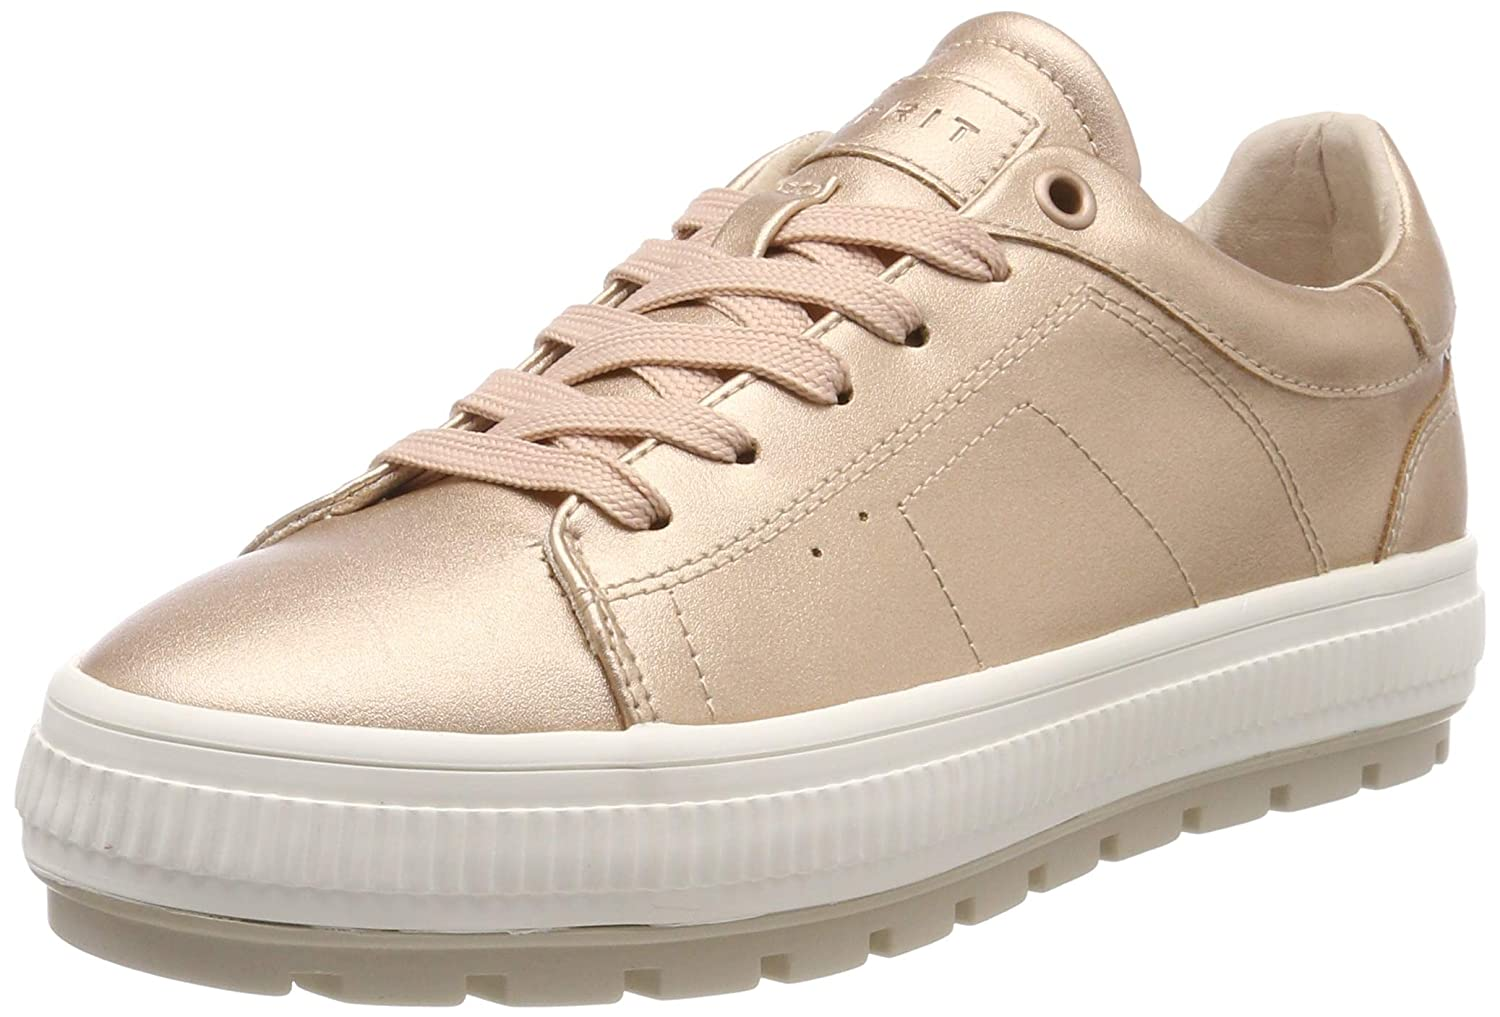 Pink (Nude 685) ESPRIT Women's Filo Platmet Lu Low-Top Sneakers